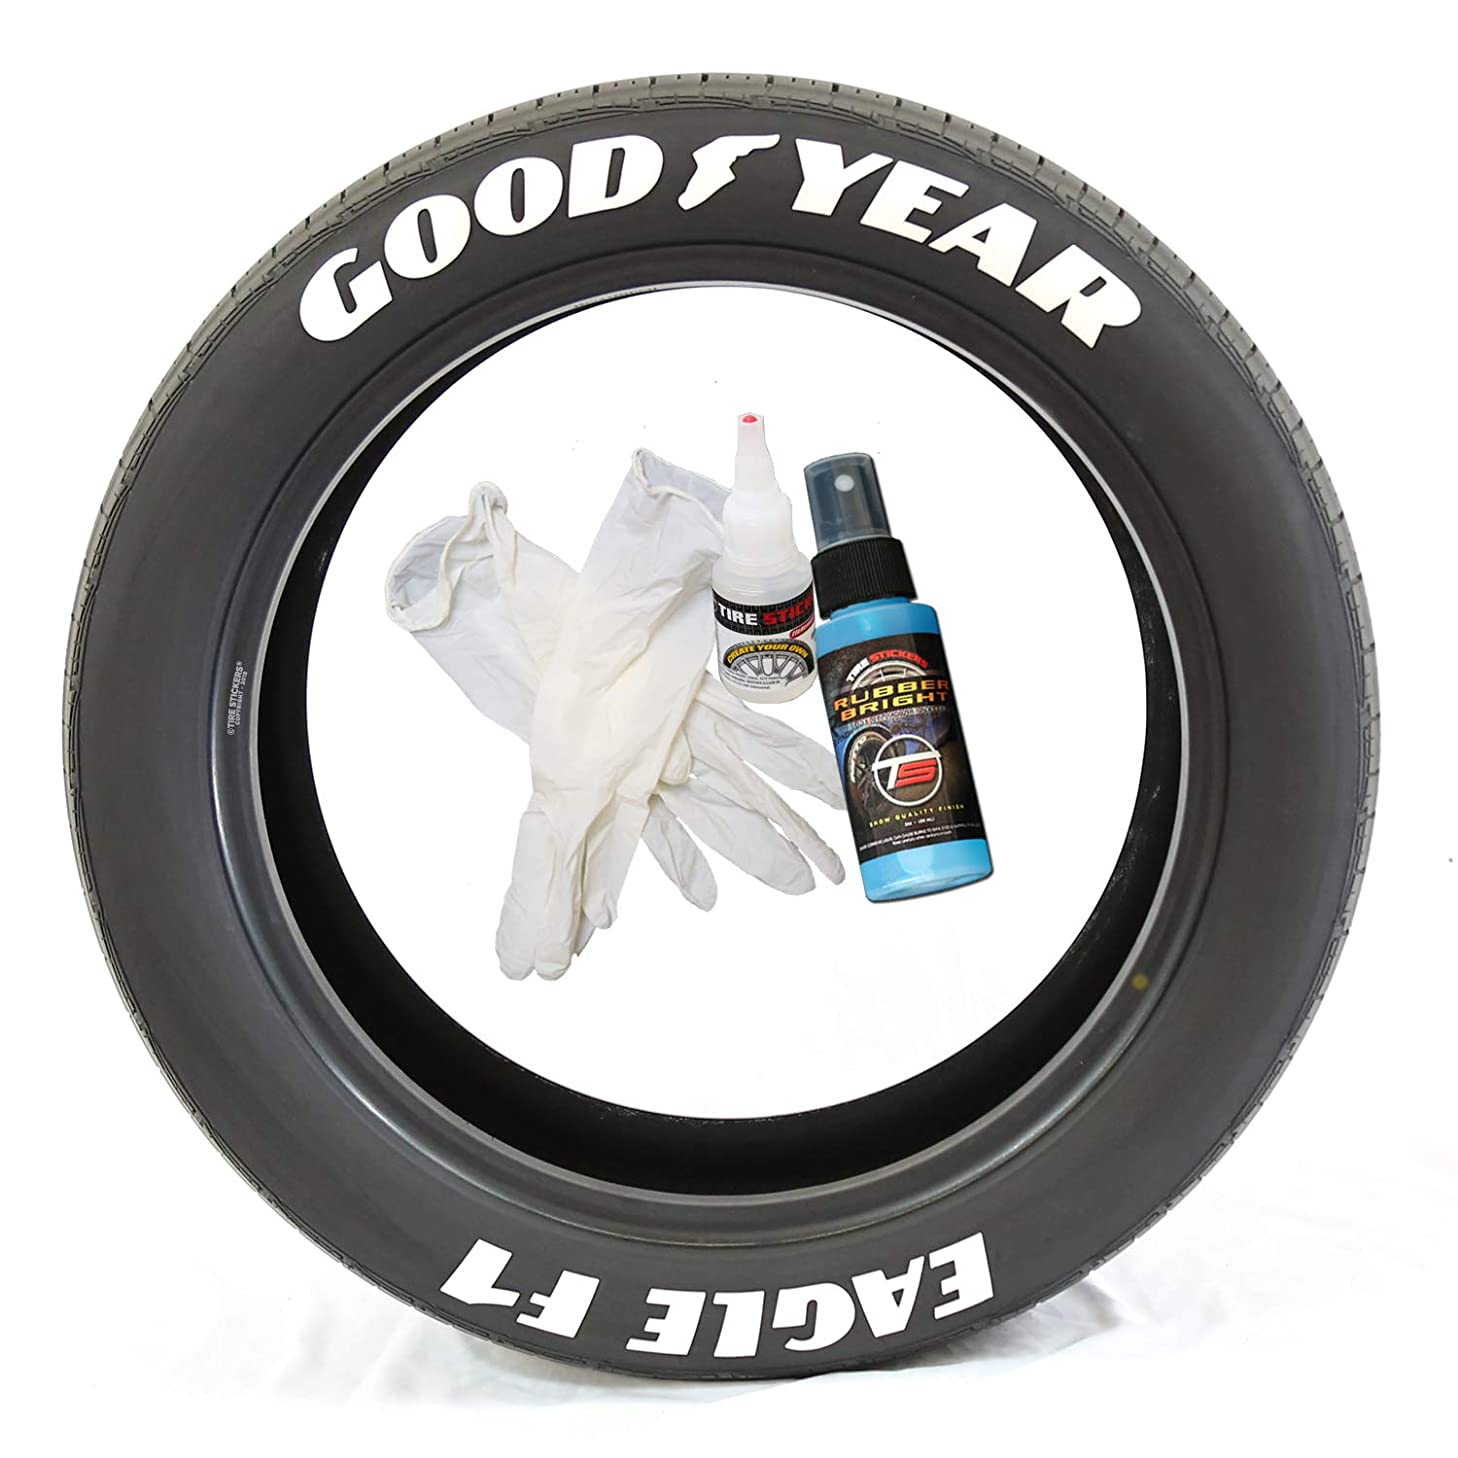 Tire Stickers Goodyear Eagle F1 - DIY Permanent Rubber Tire Lettering Kit with Glue & 2oz Touch-Up Cleaner / 19-21 Inch Wheels / 1.50 Inches/White 8 Pack